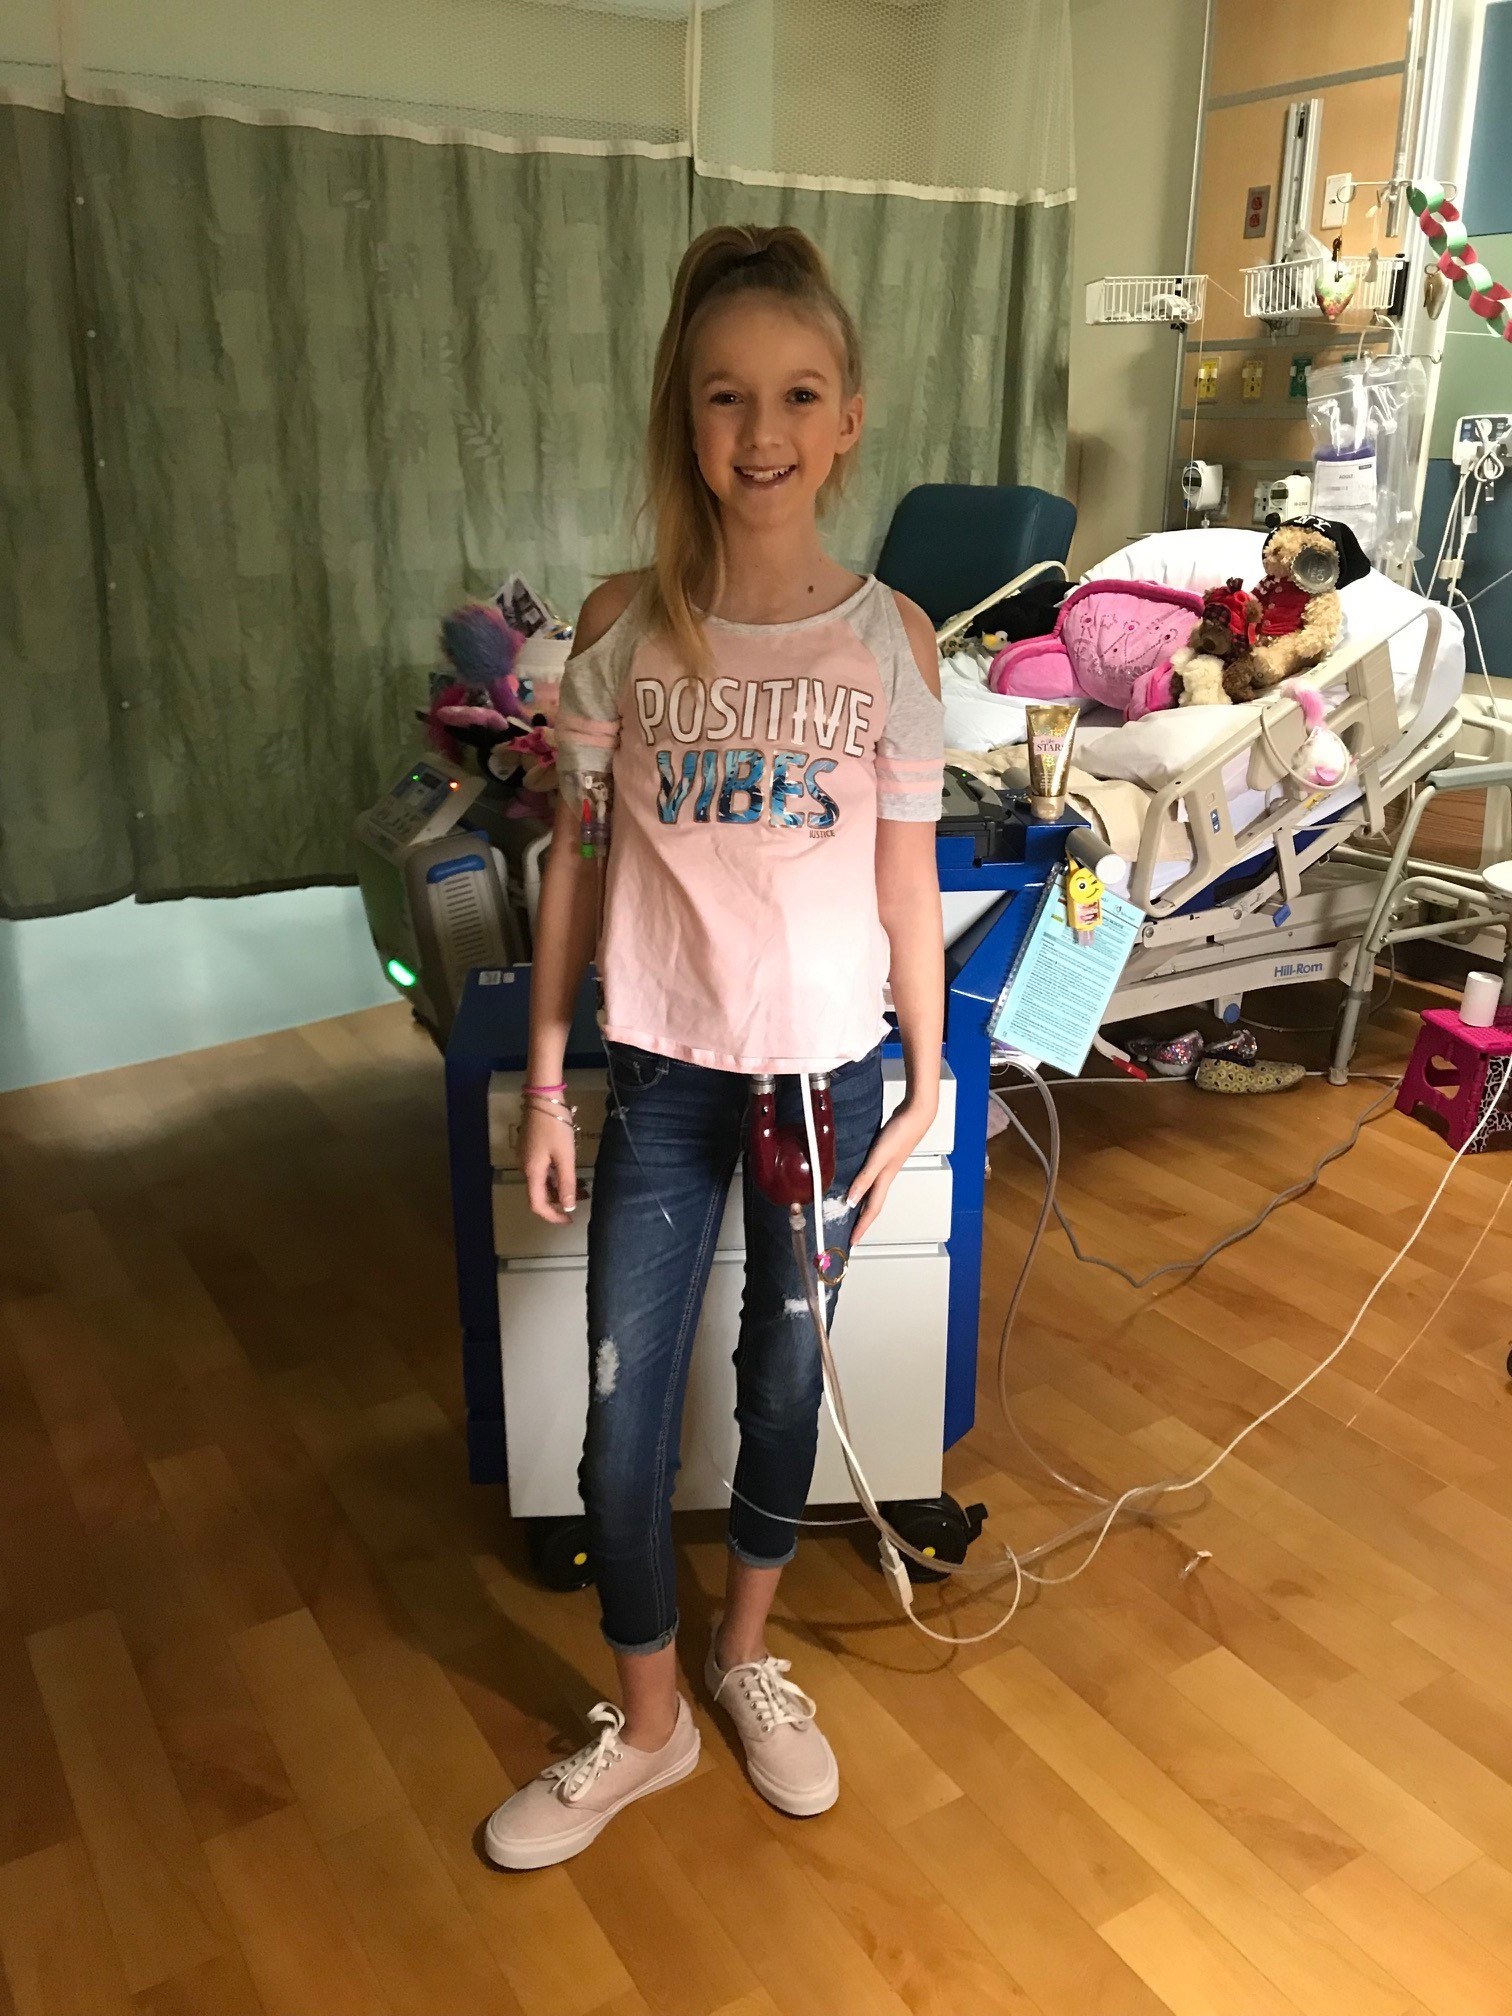 a teen girl posing in a hospital room wearing every day clothes